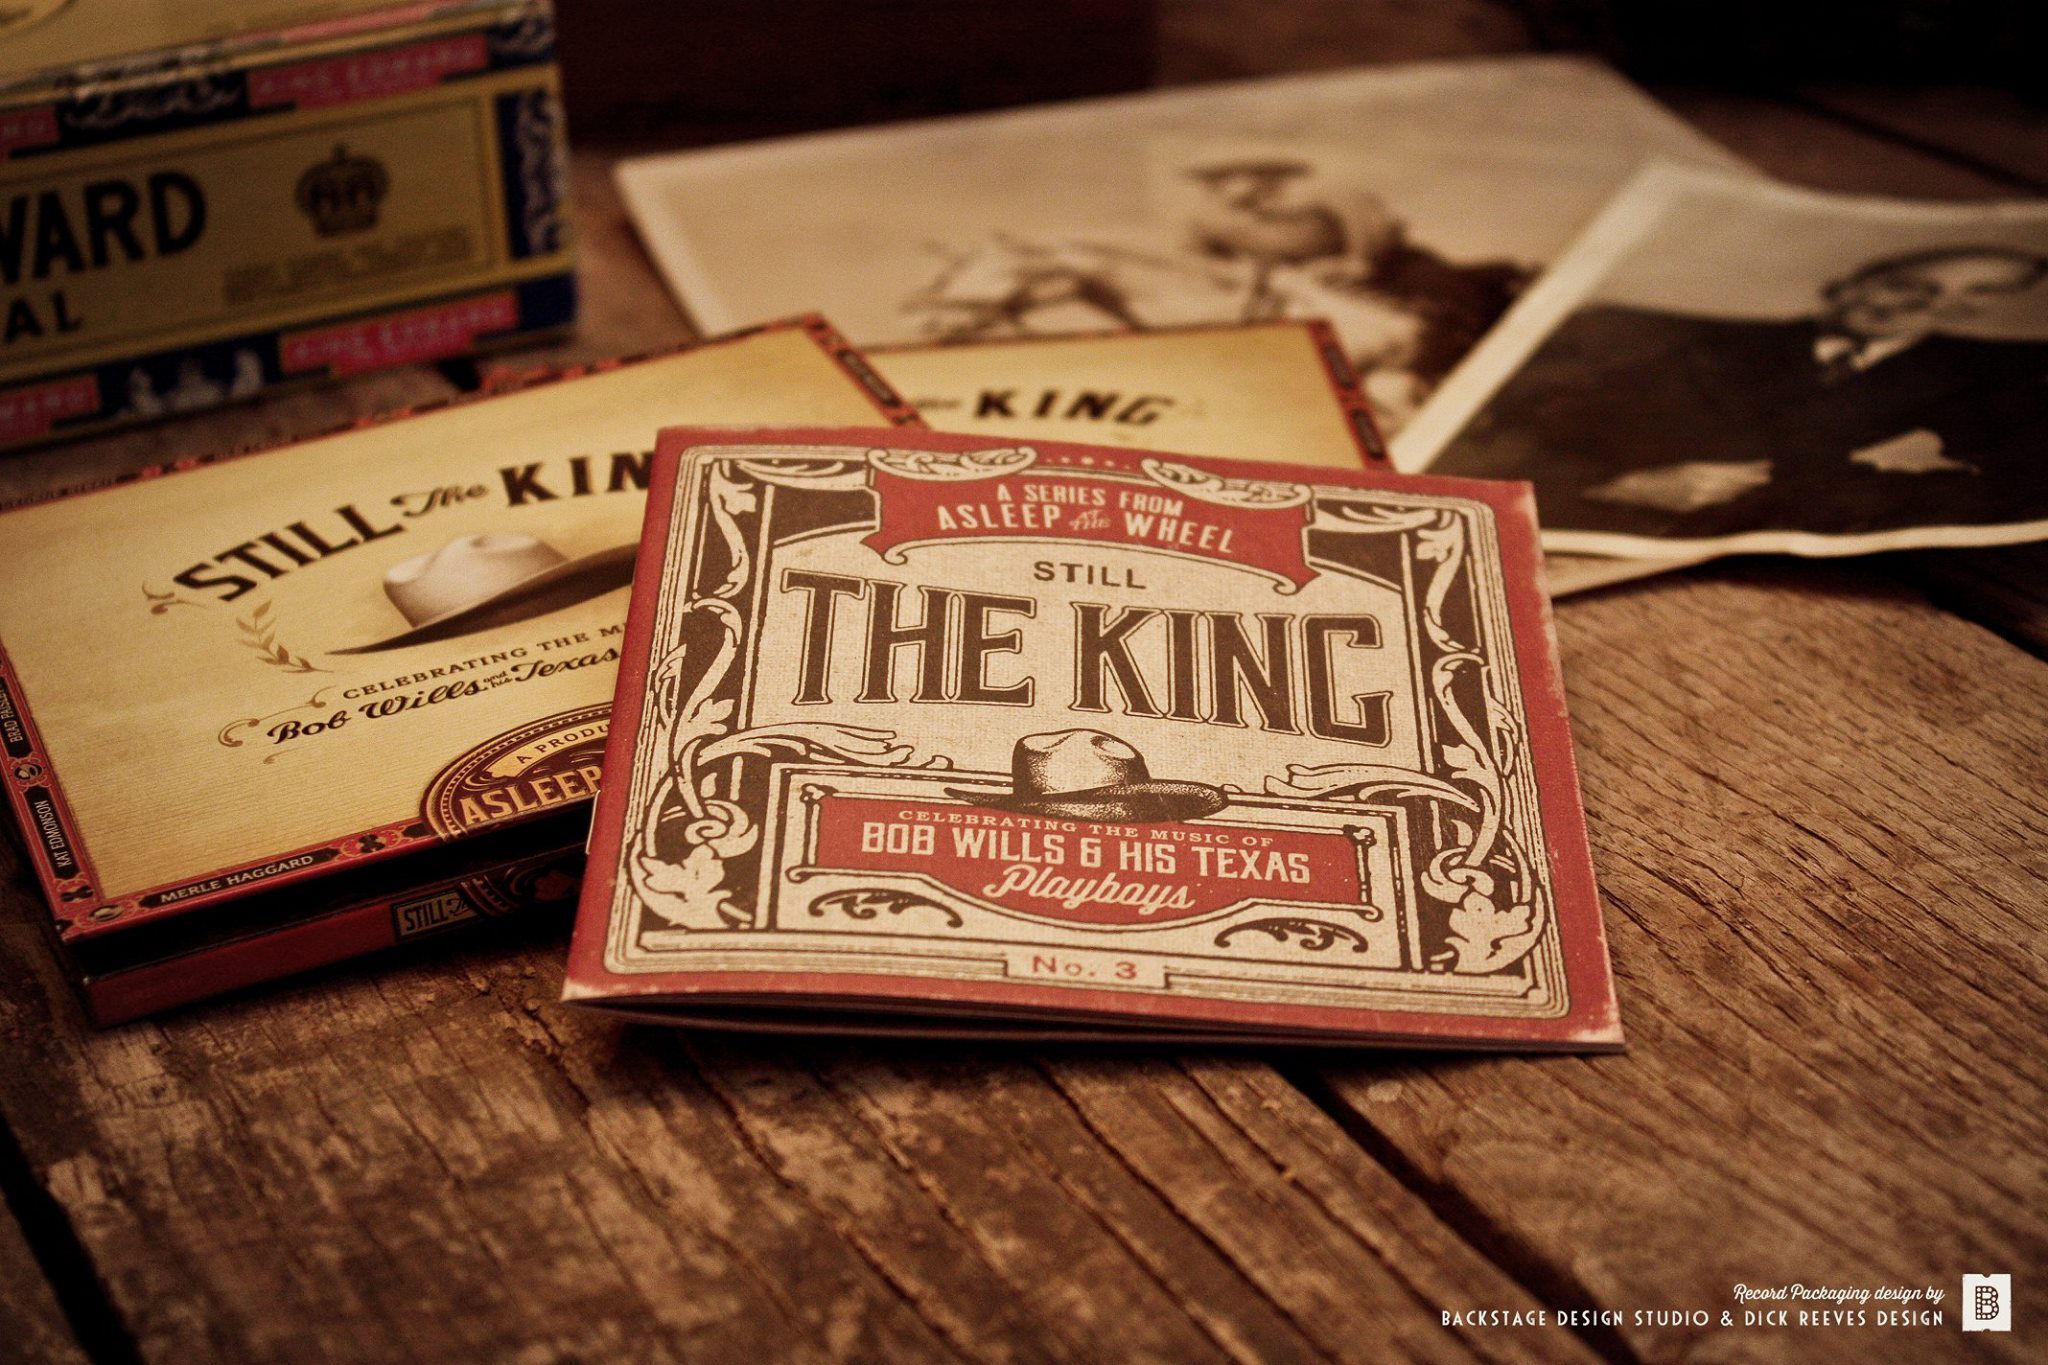 Still the King - Best Recording Package Nominee - 58th Annual Grammy Awards - Shauna Dodds, Sarah Dodds & Dick Reeves